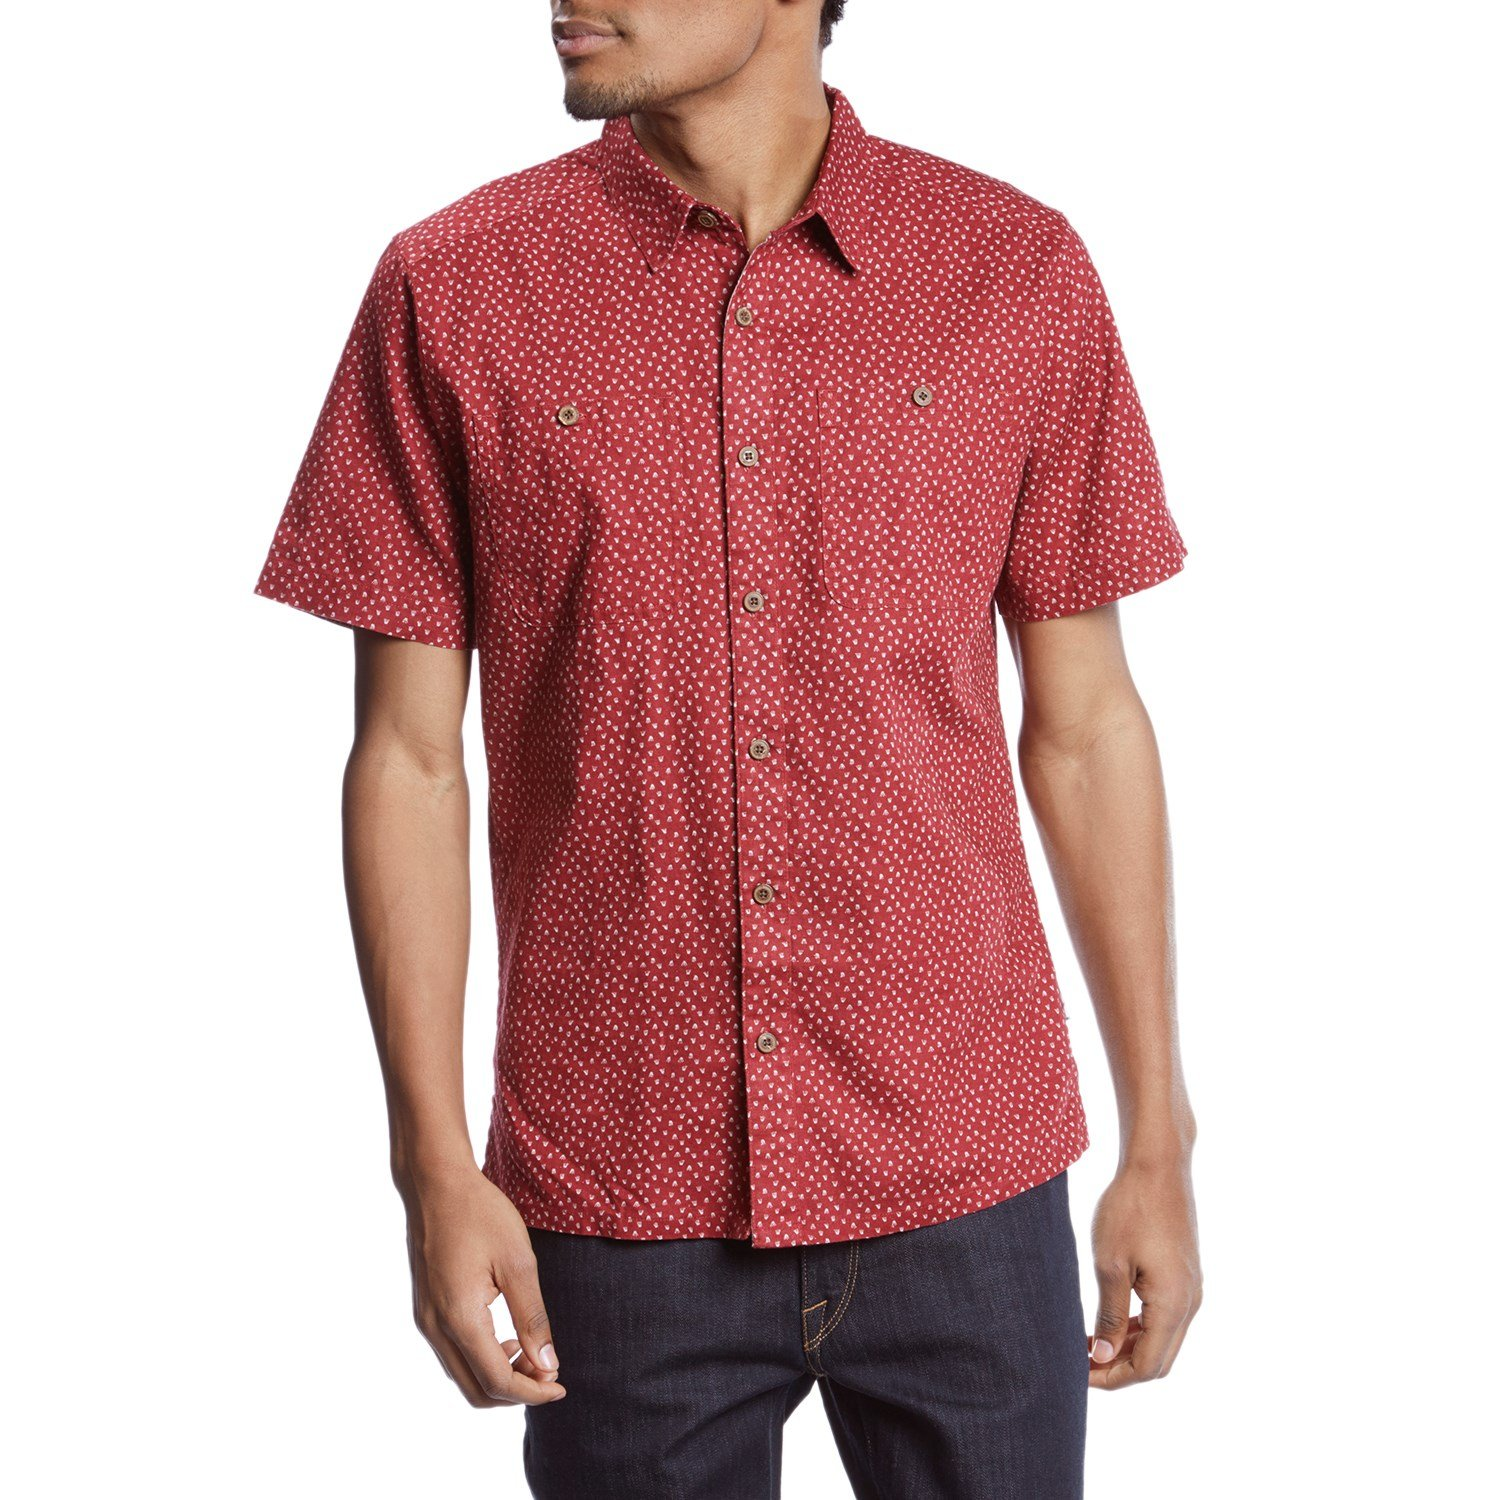 Patagonia Back Step Short-Sleeve Button-Down Shirt | evo